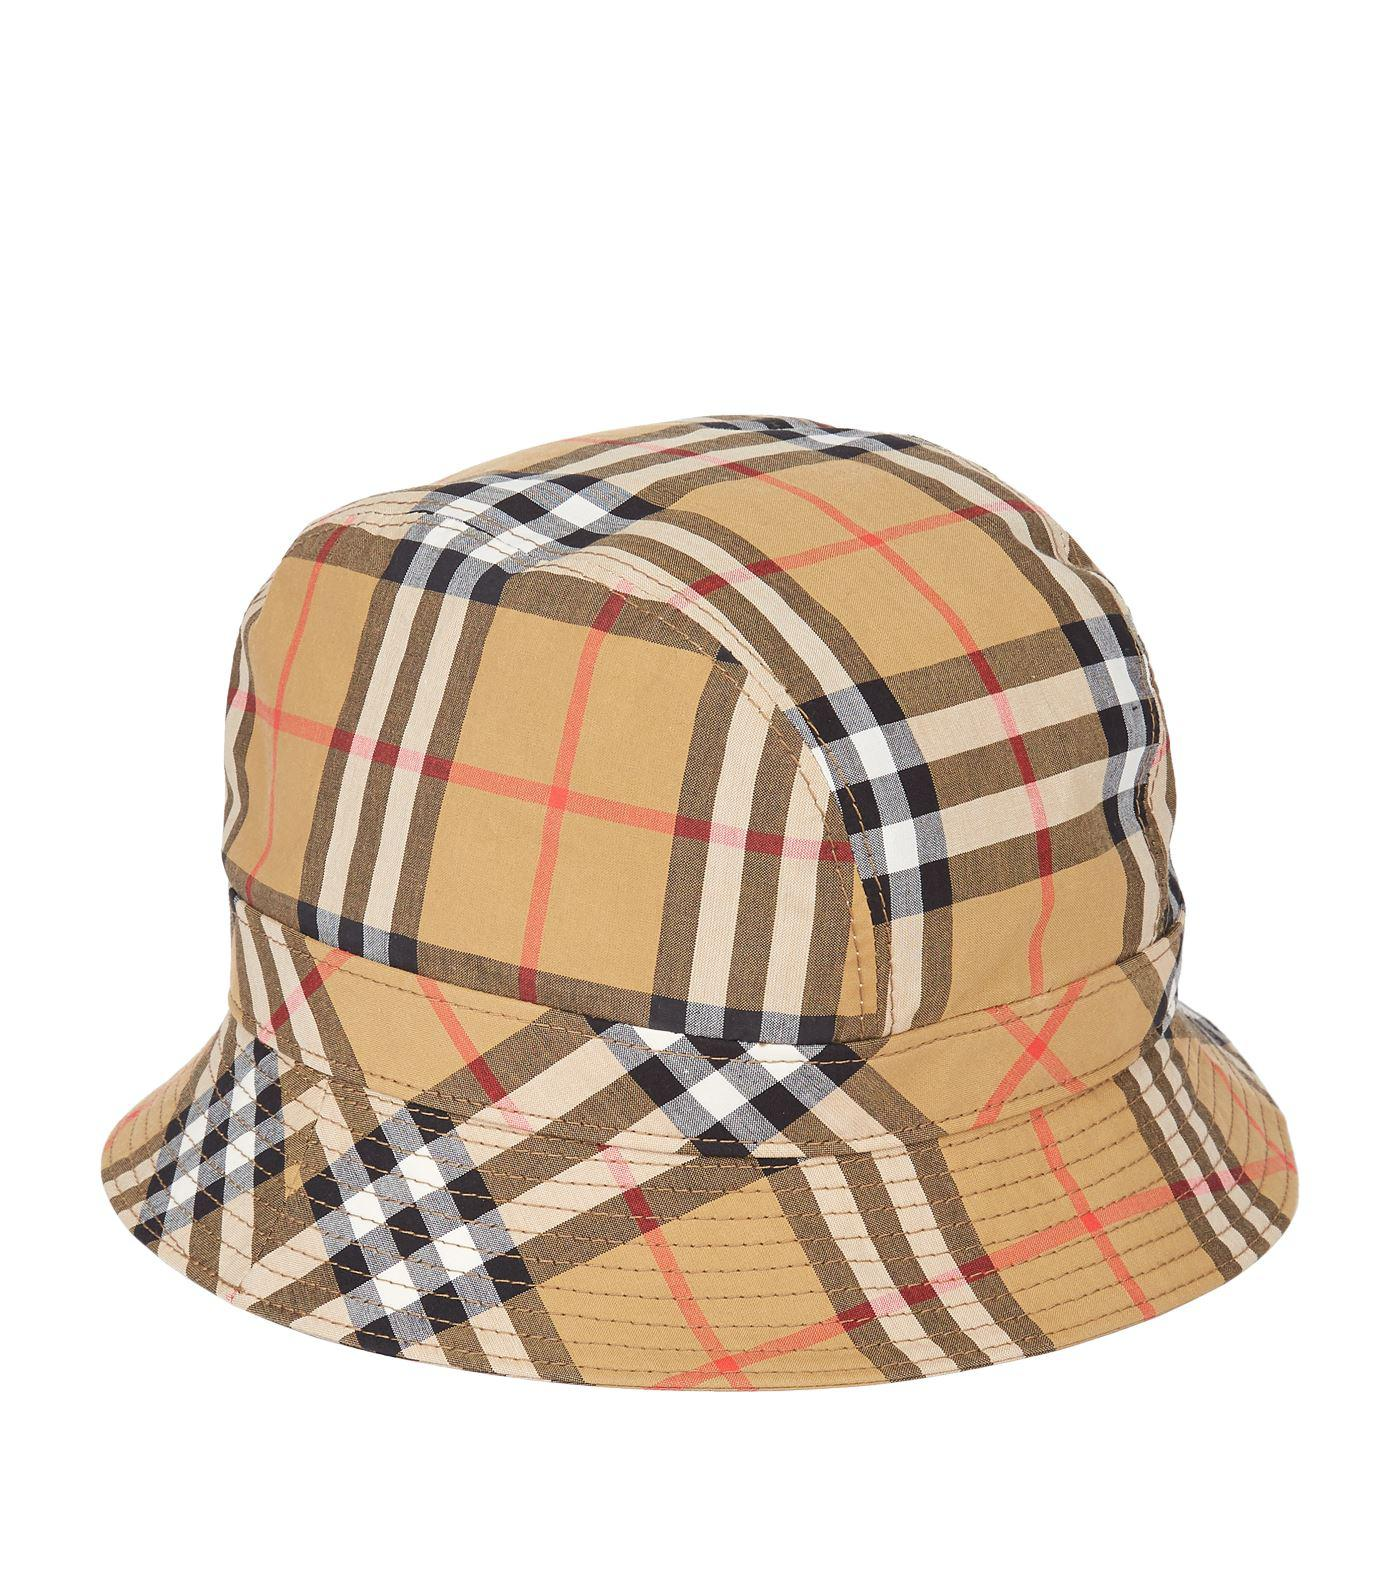 Lyst - Burberry Vintage Check Bucket Hat in Yellow 667c830129f